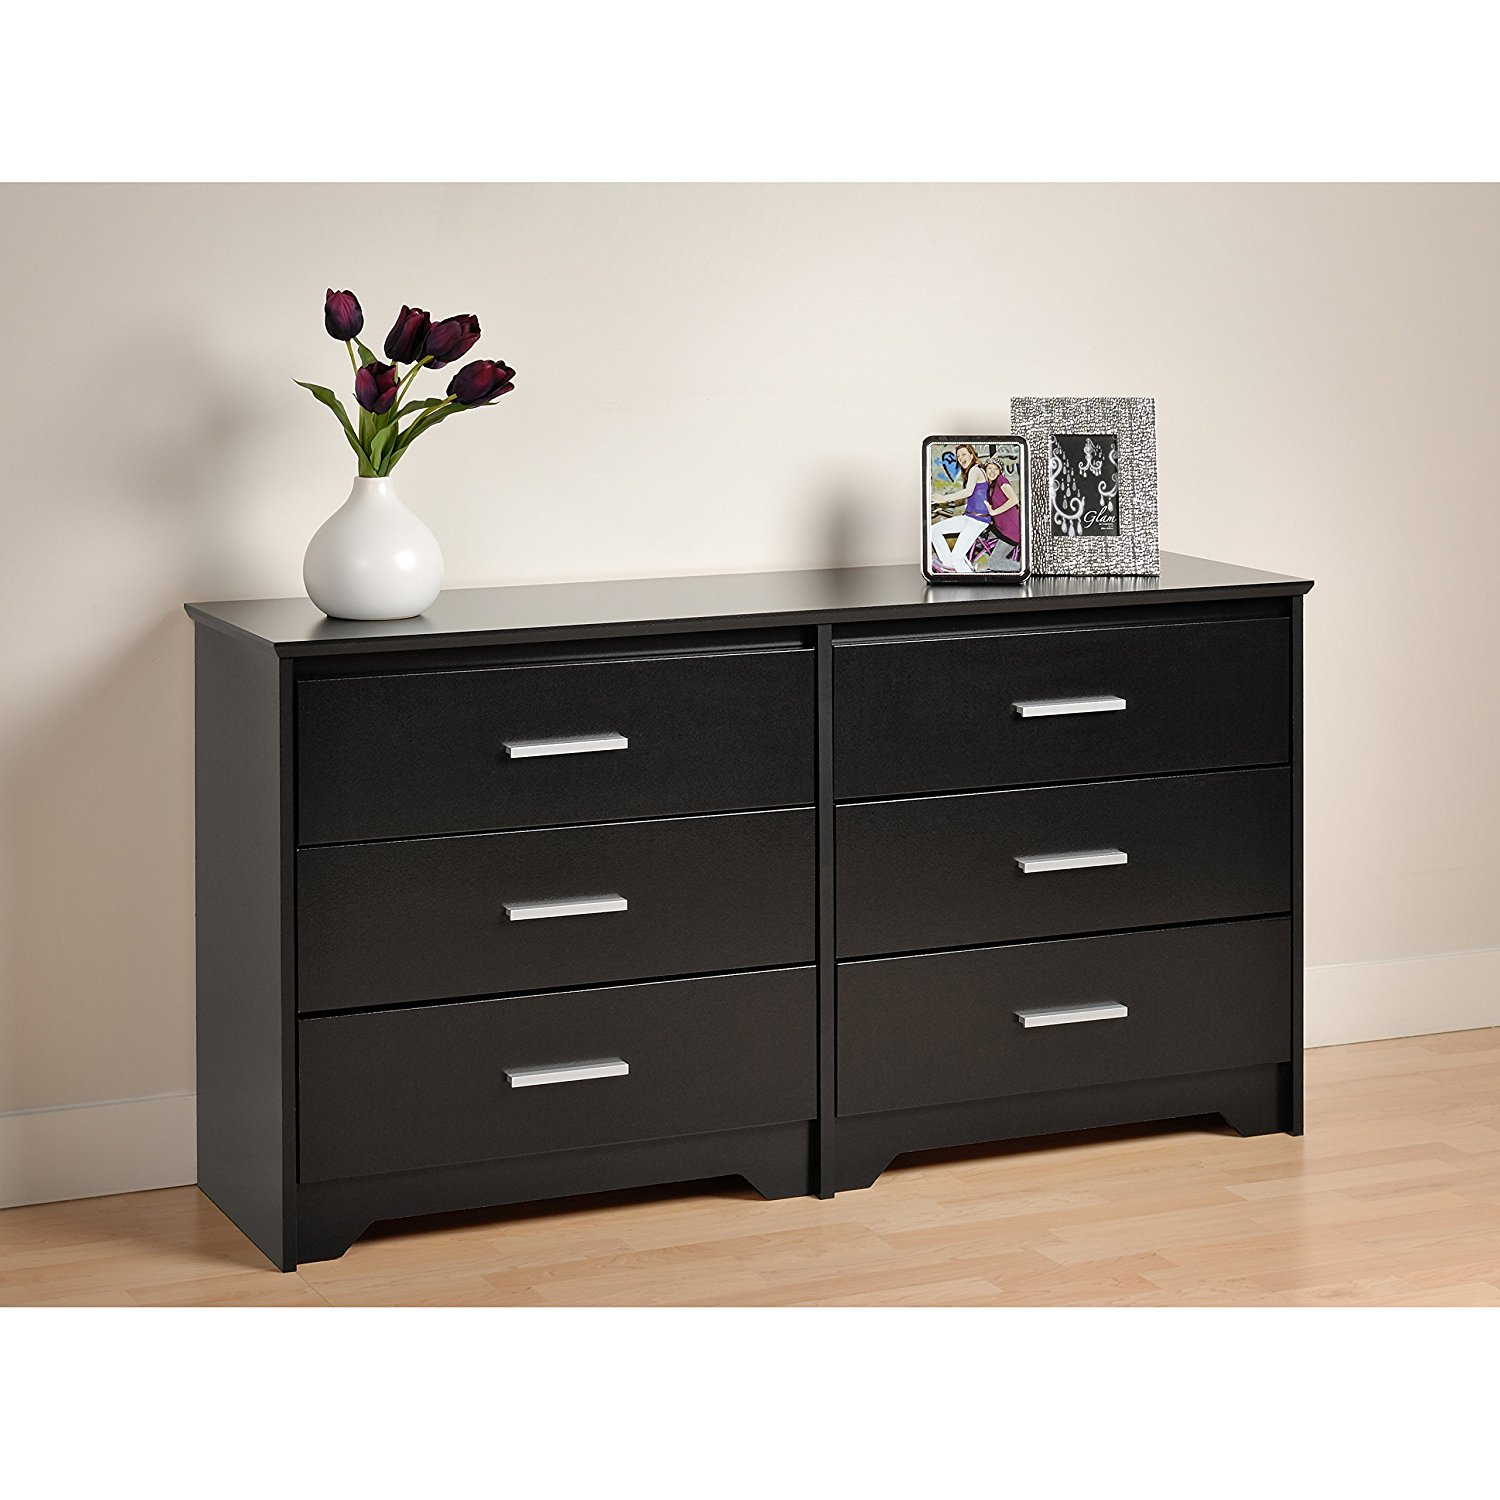 Picture of: 6 Drawer Dresser Black Color